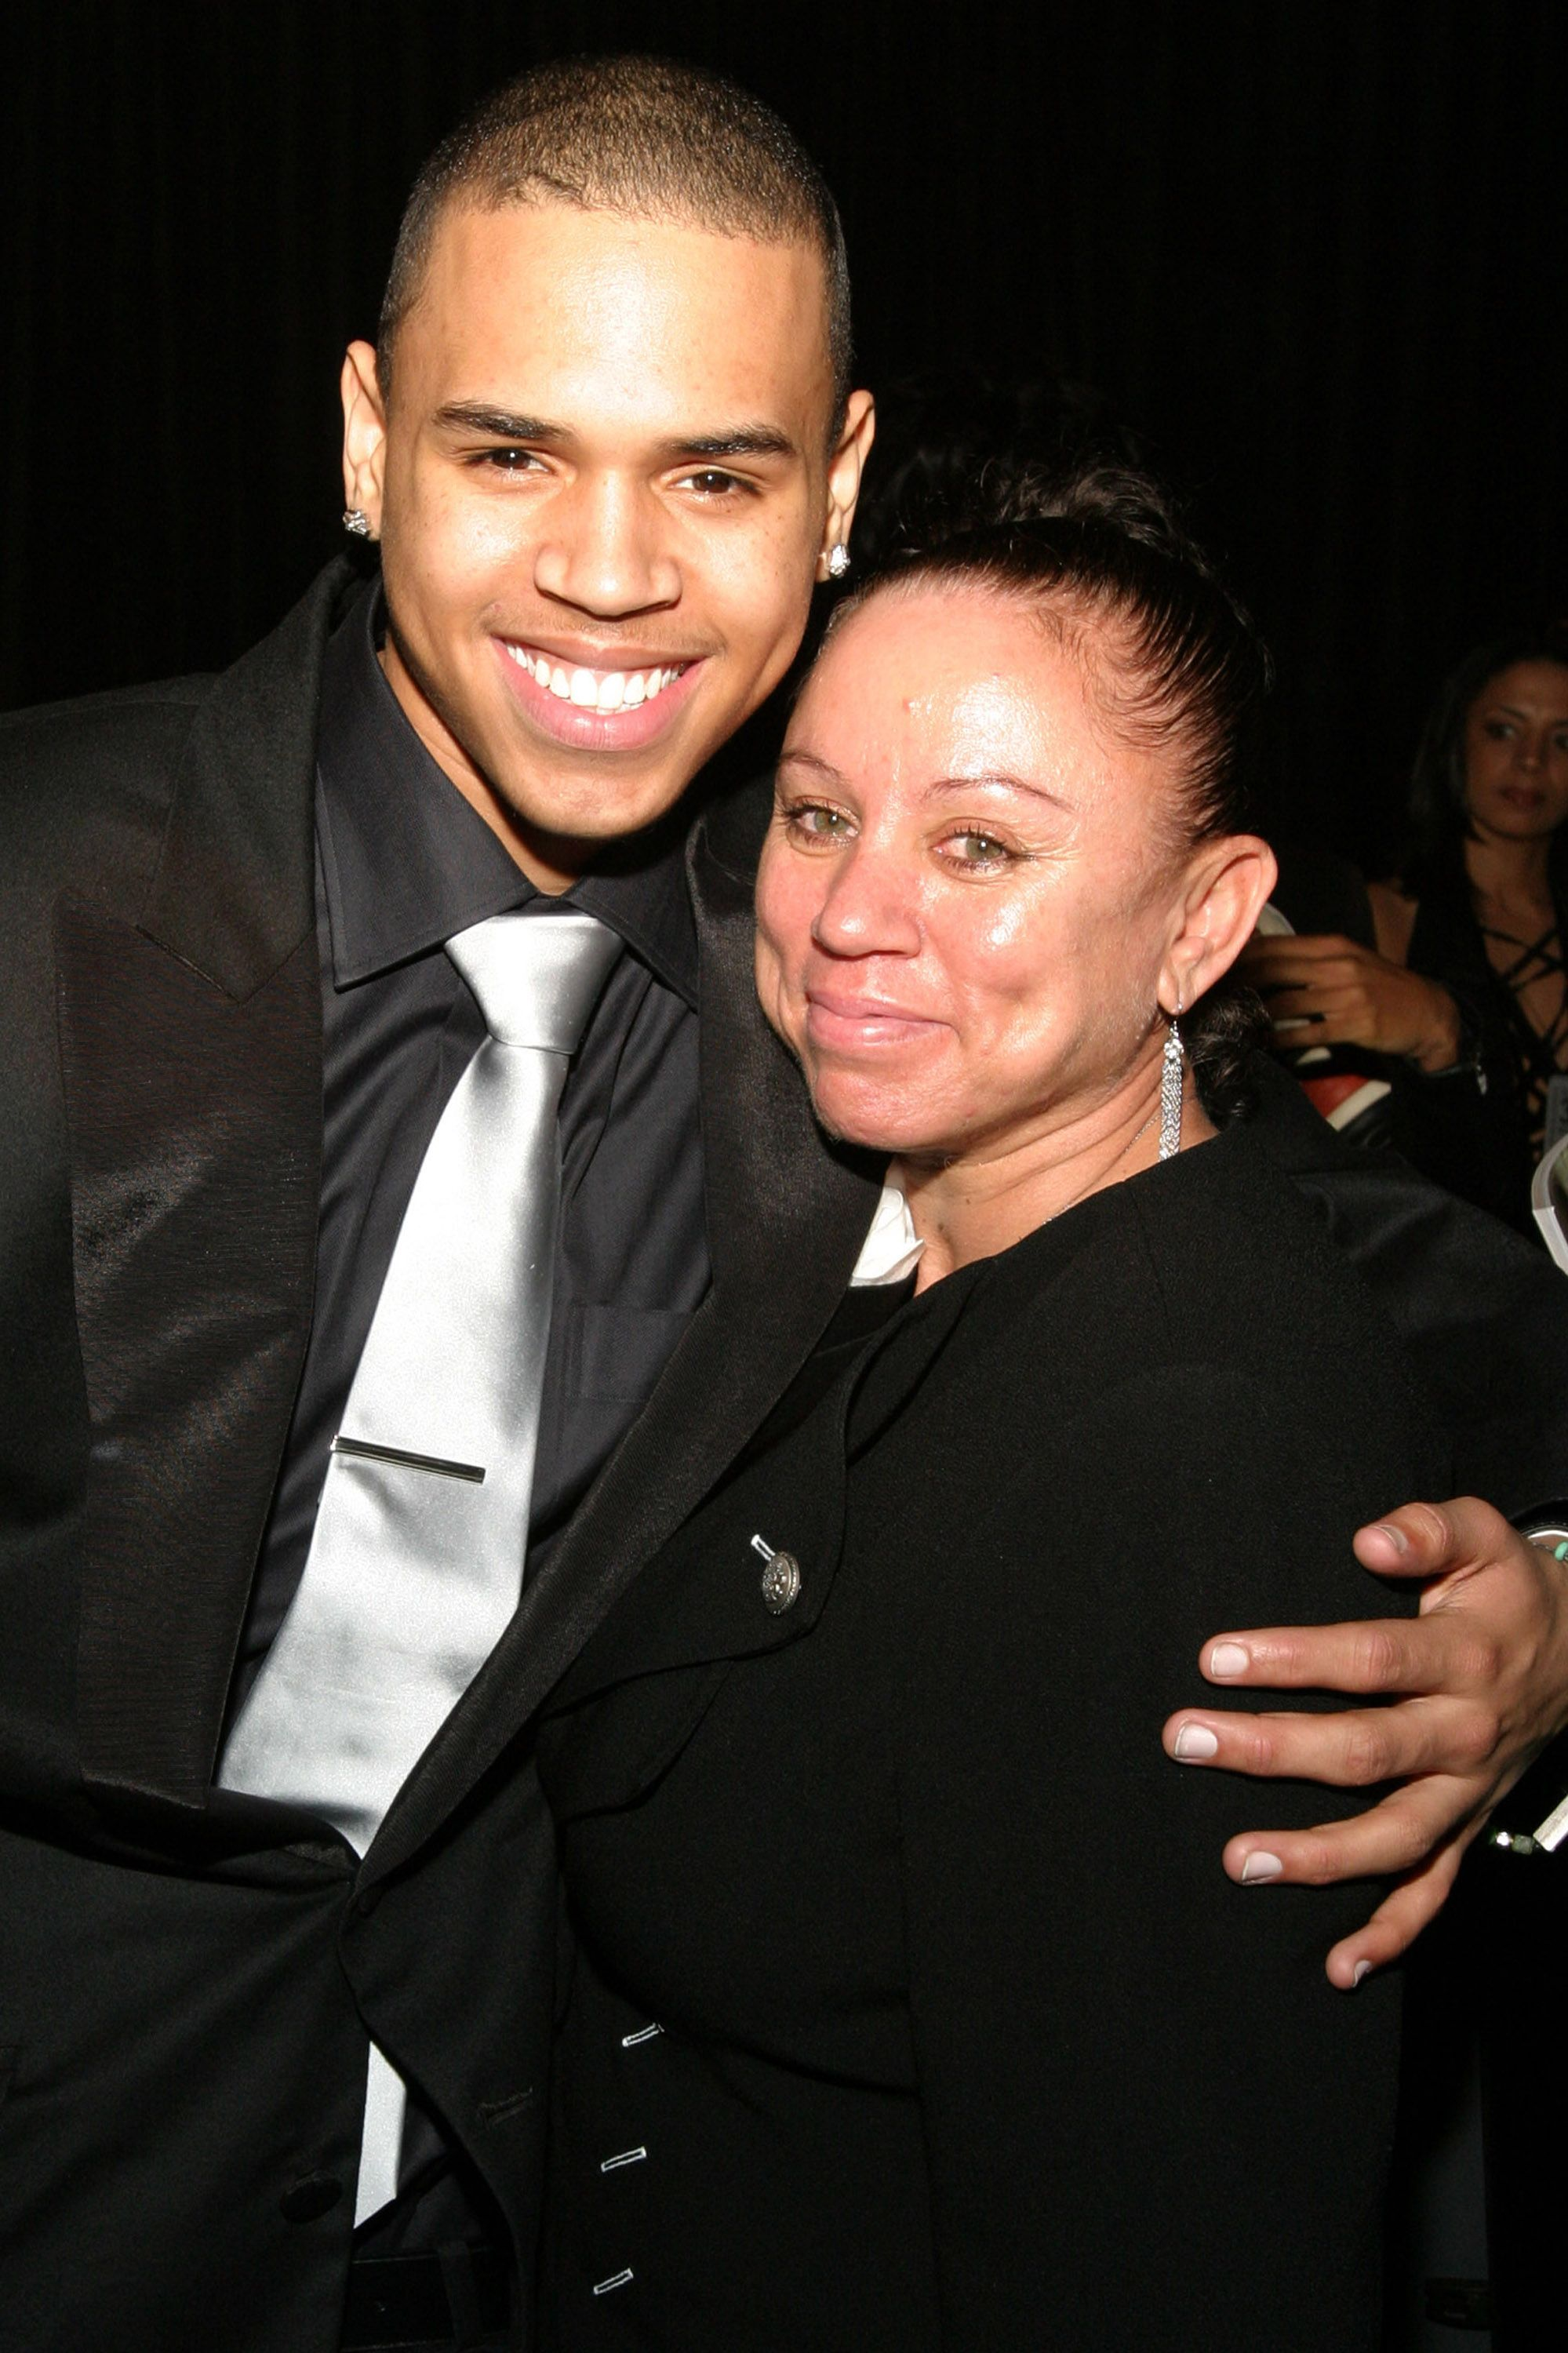 Chris Brown with his mother Joyce Hawkins at the the 37th Annual NAACP Image Awards 1n 2005 in California | Source: Getty Images